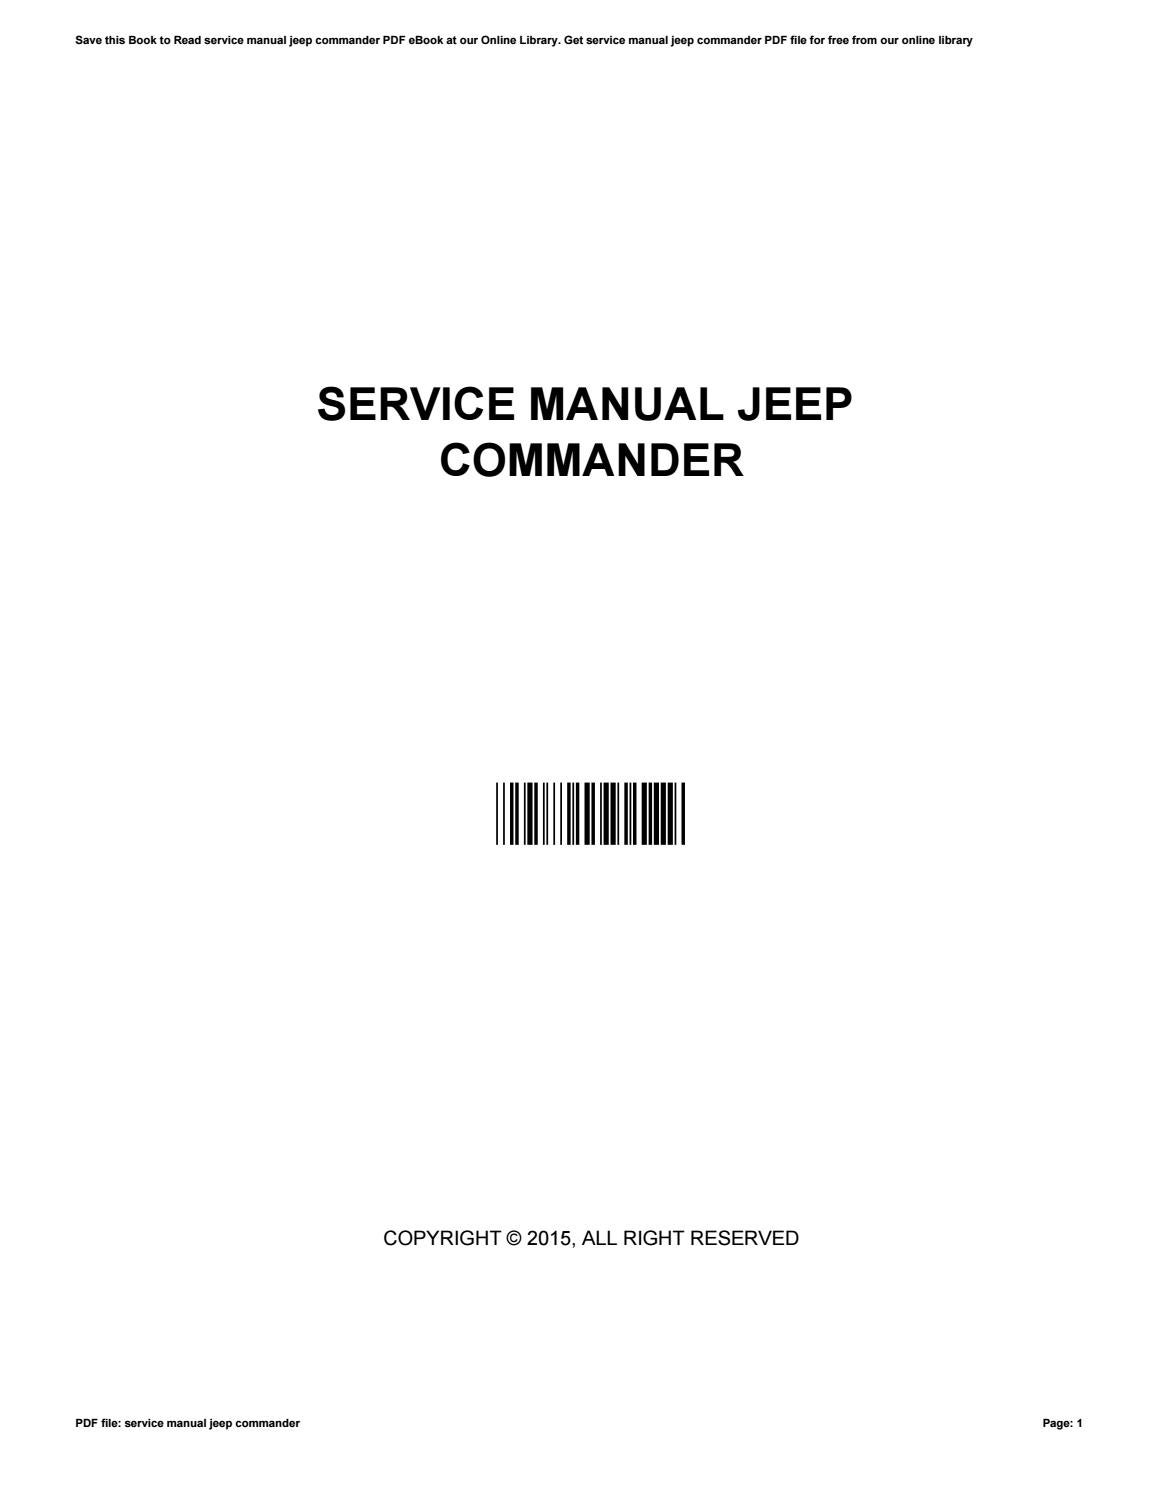 Service manual jeep commander by j4015 - Issuu